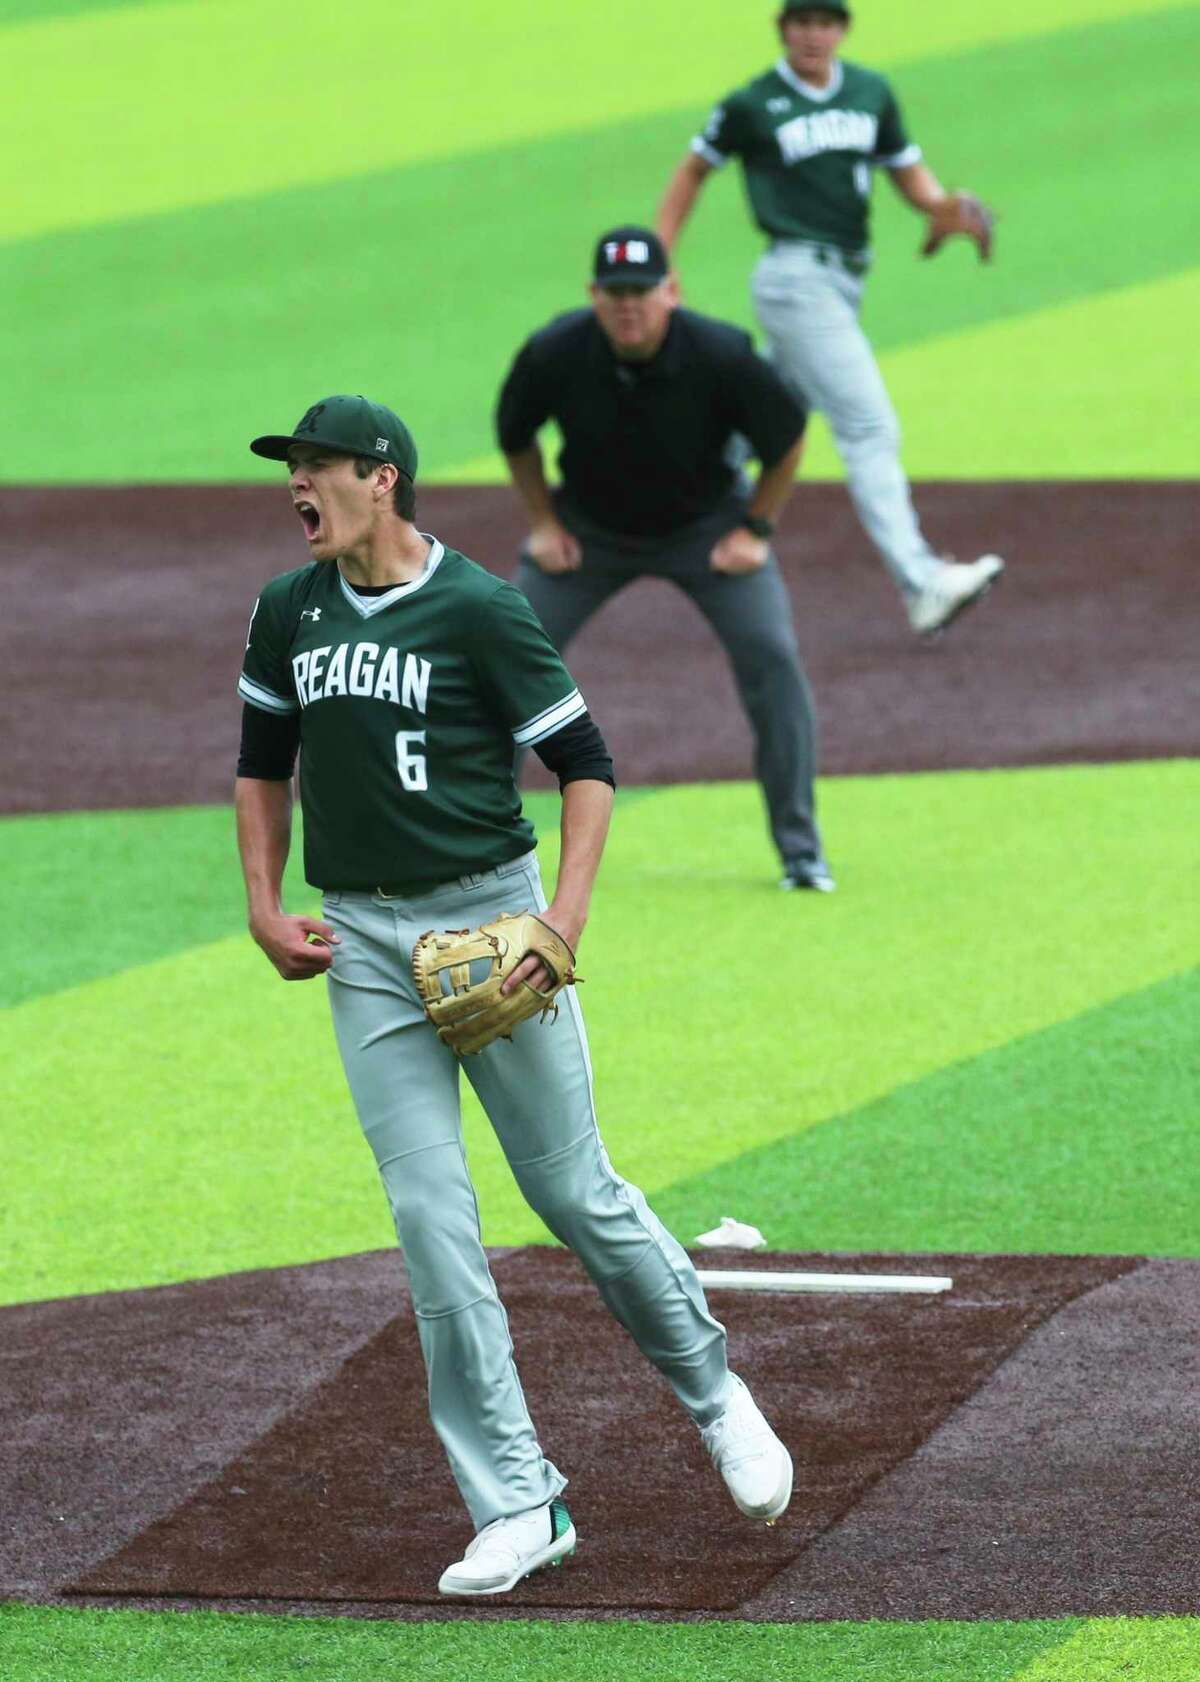 Reagan pitcher Will Carsten (6) reacts after getting his sixth strikeout at the end of the third inning against O'Connor in Game 2 of their best-of-3 first-round baseball playoff series at North East Sports Park on May 3, 2019.